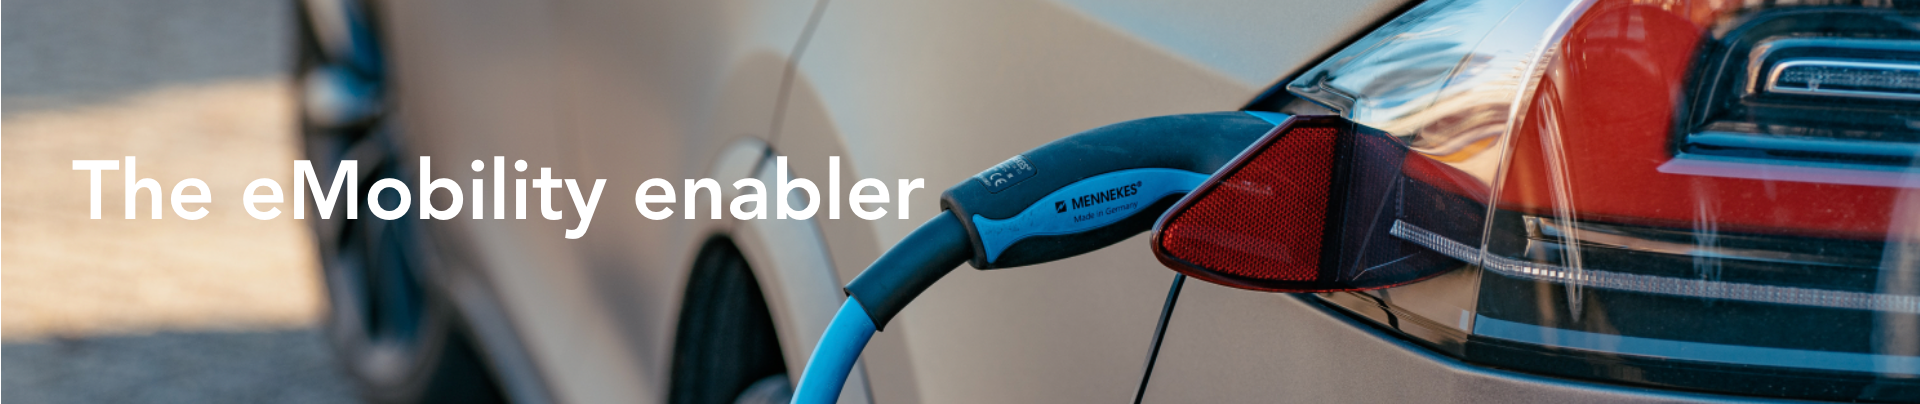 eMabler in Future of mobility program arranged by KasvuOpen